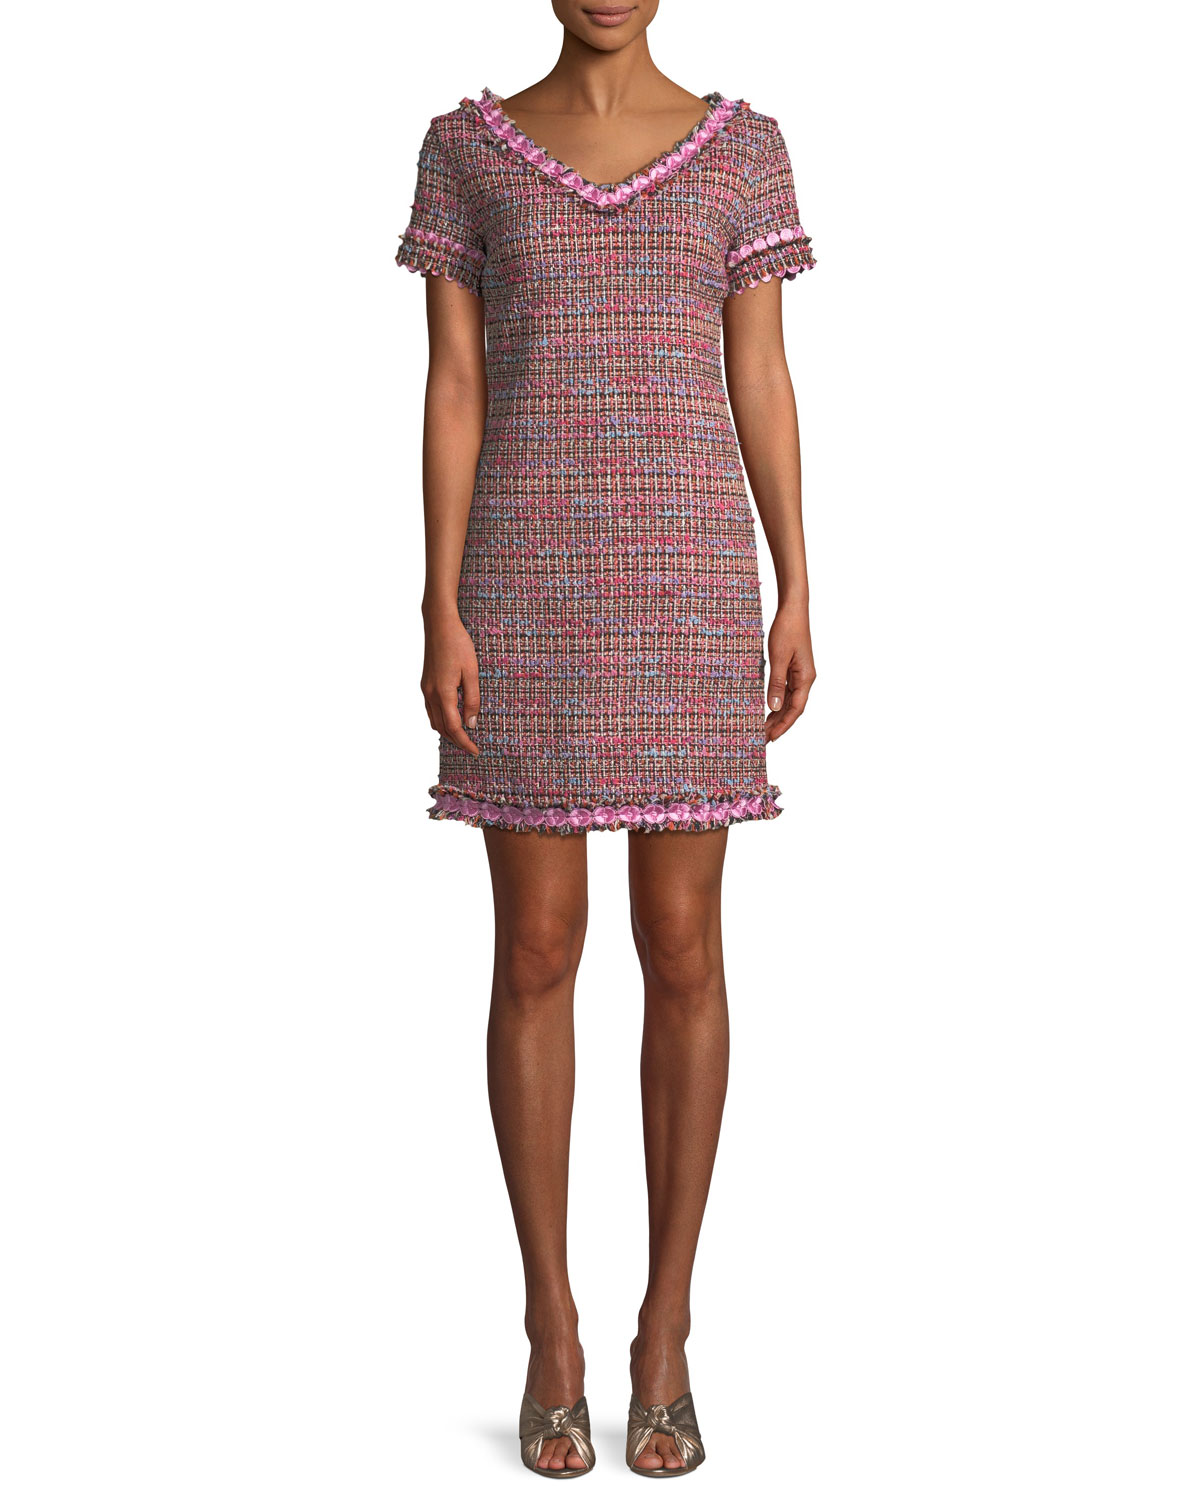 BOUTIQUE MOSCHINO Flower-Trim Tweed V-Neck Dress in Pink